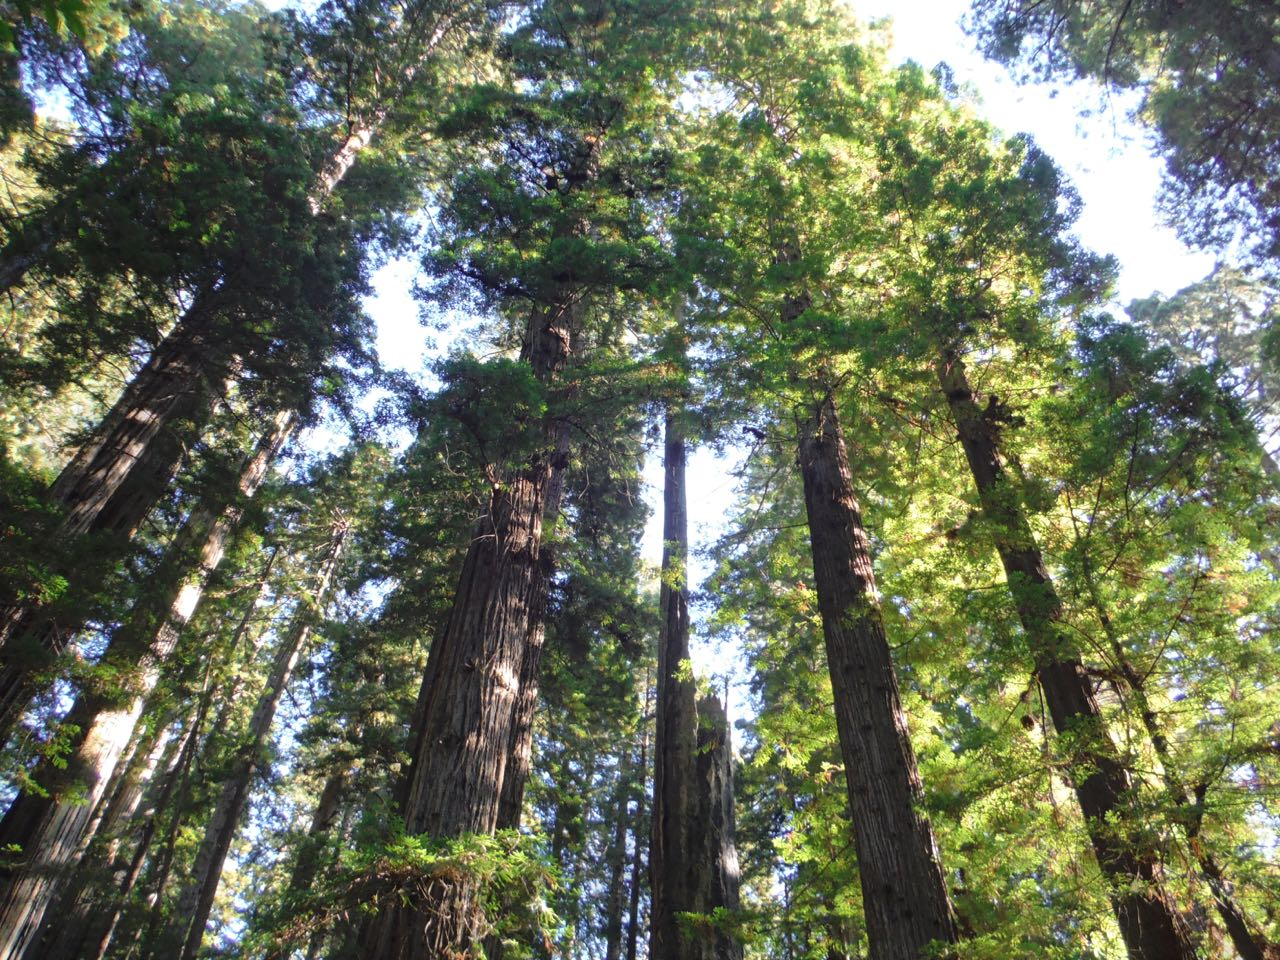 Redwoods 2017 10 08 241 Of 287